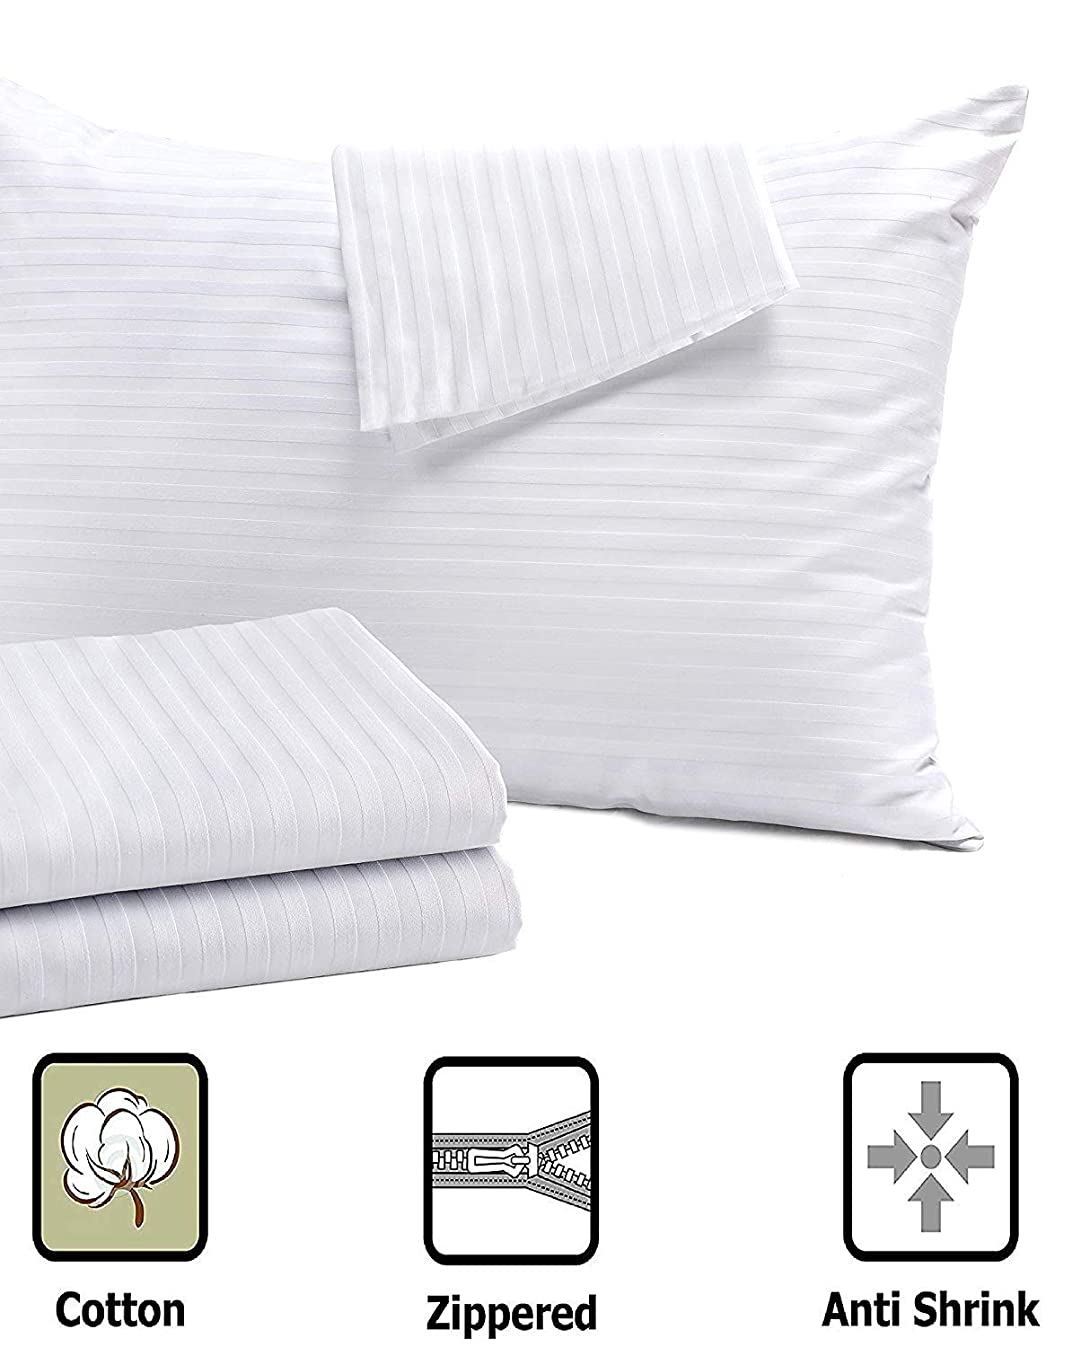 Niagara Sleep Solution 4 Pack Pillow Protectors Standard Control 20x26 Inches ? Life Time Replacement ? 100% Cotton Sateen High Thread Count 400 Style Zippered White Hotel Quality Covers Cases